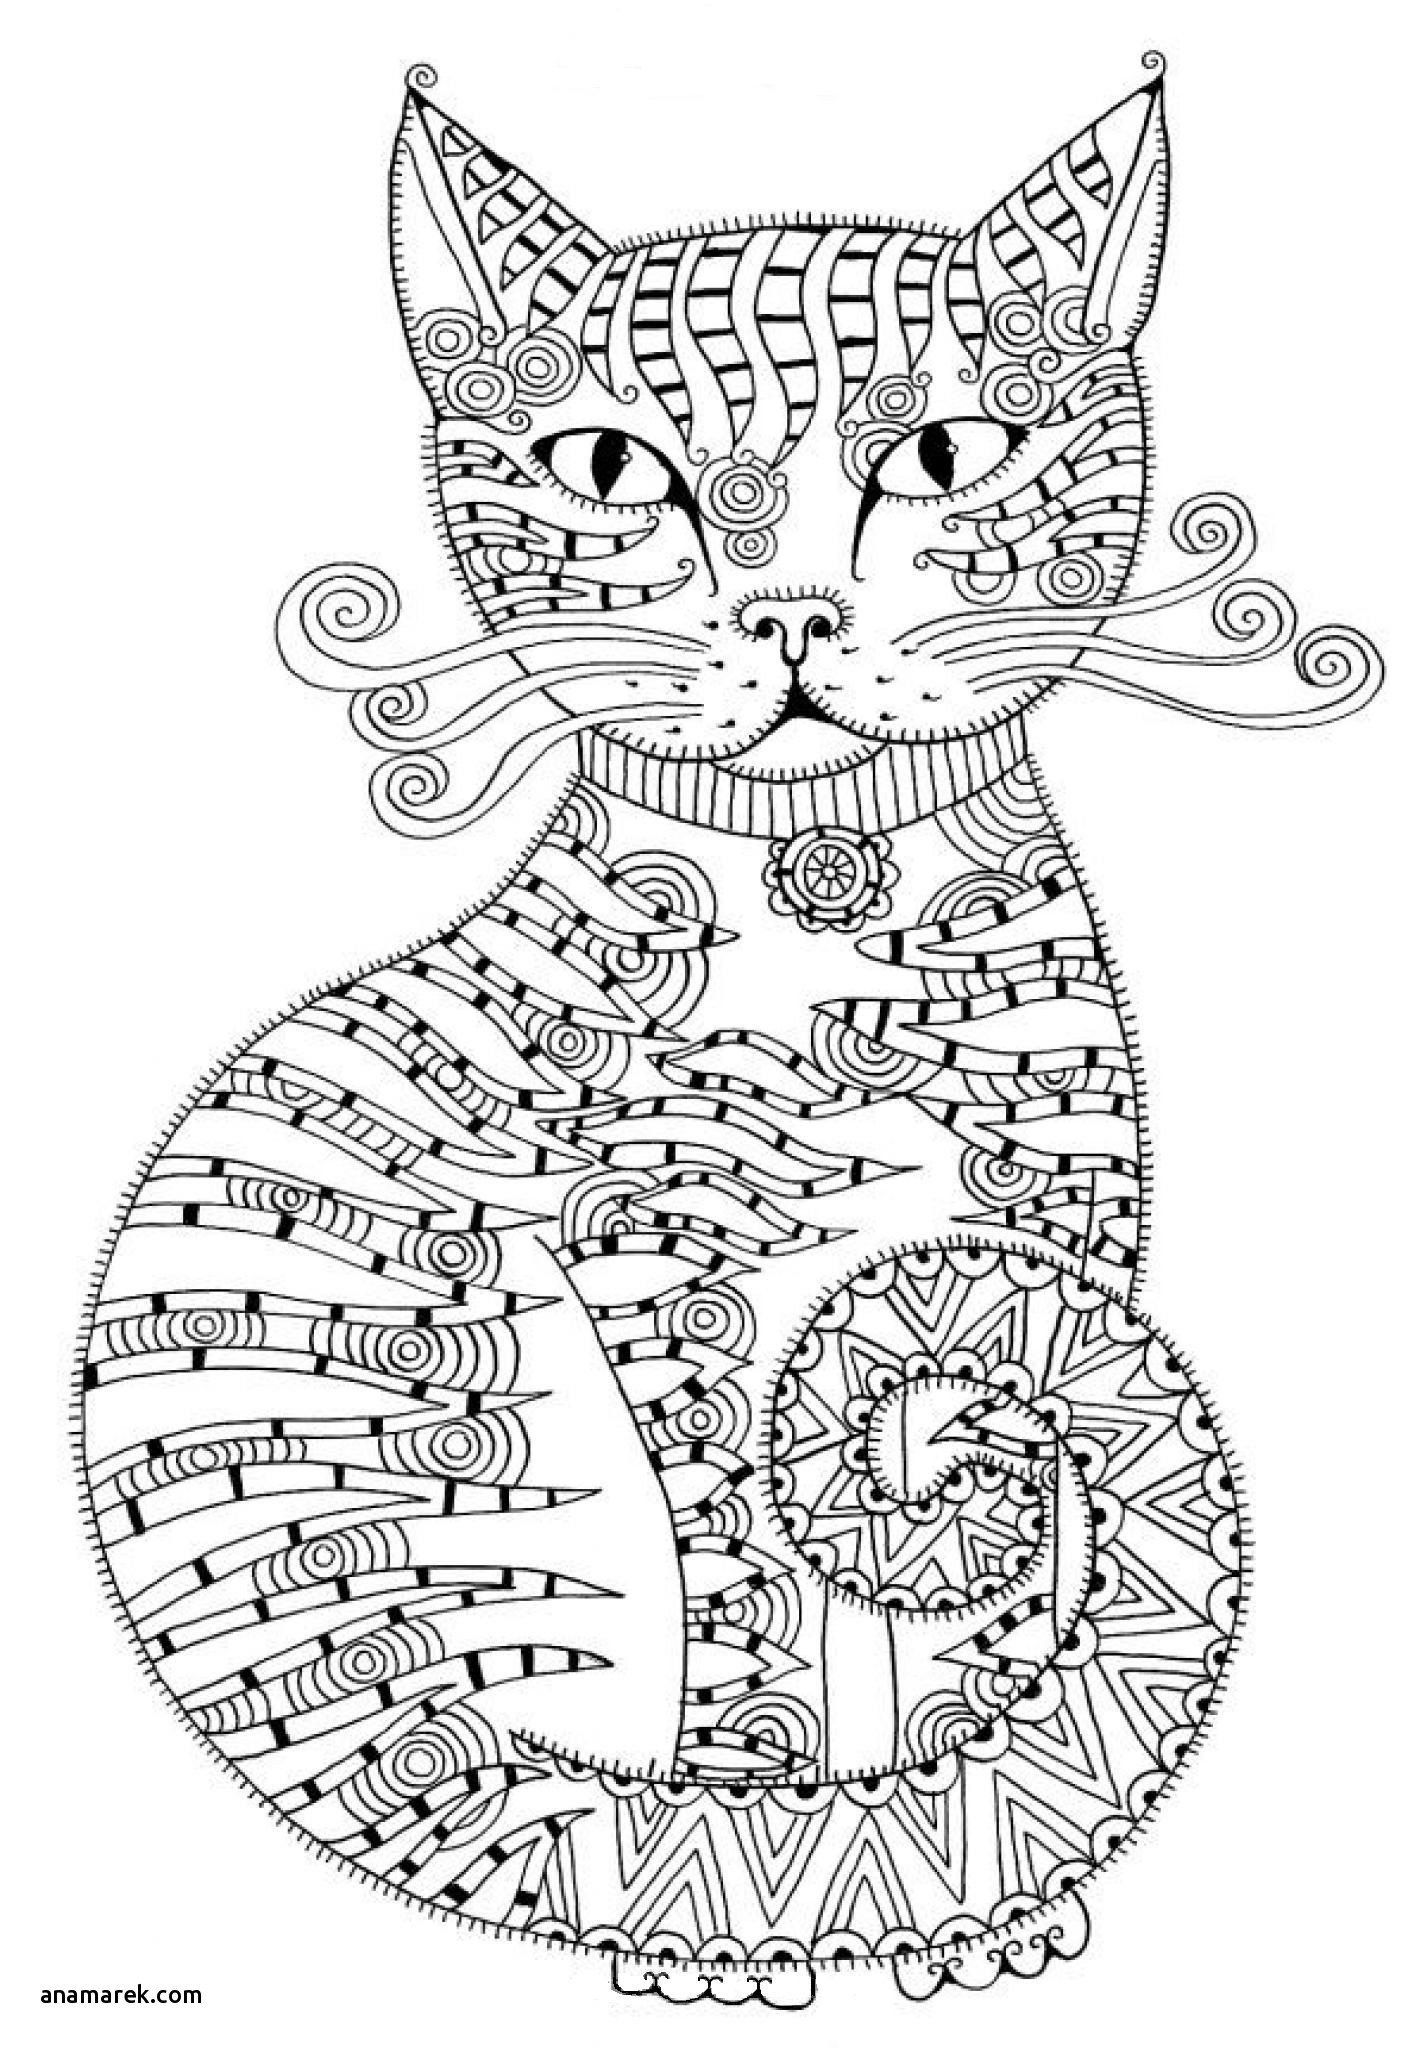 Cat Coloring Pages For Adults Lovely Himalayan Cat Coloring Pages Cat Coloring Book Cat Coloring Page Animal Coloring Pages